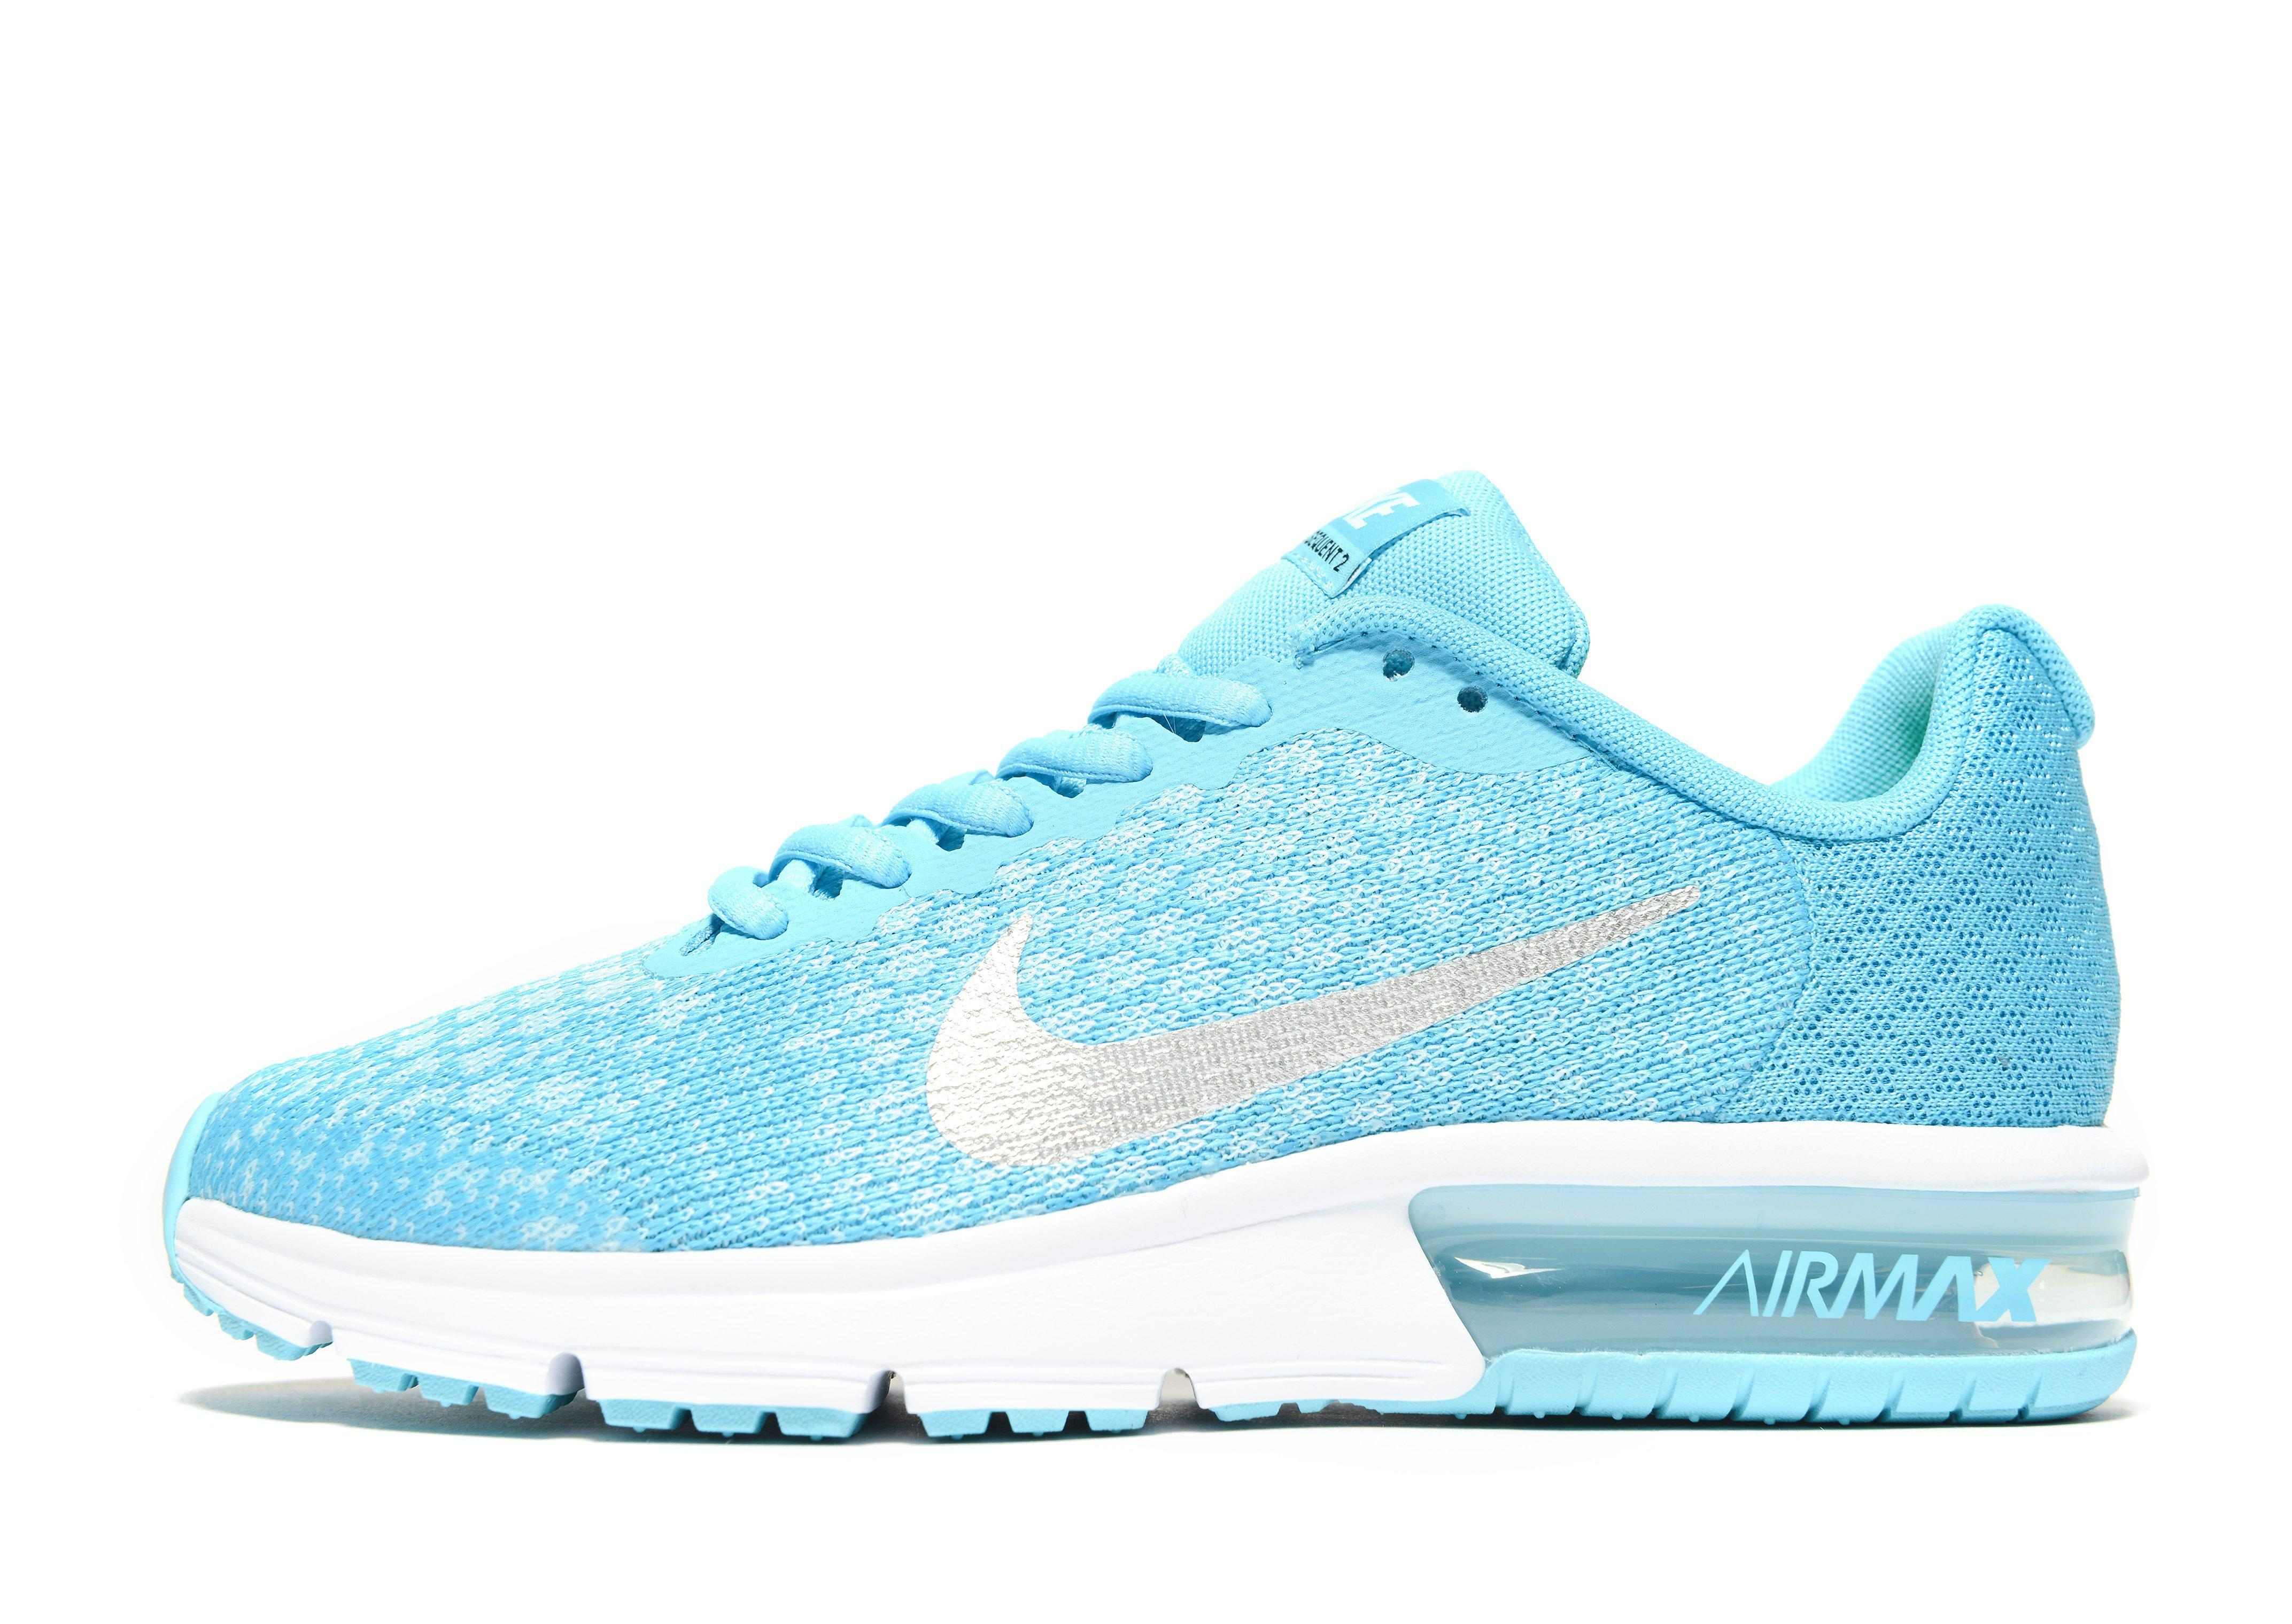 a3d6d6cb2e3 ... wholesale gallery. previously sold at jd sports womens nike air max  980fe 73b0a